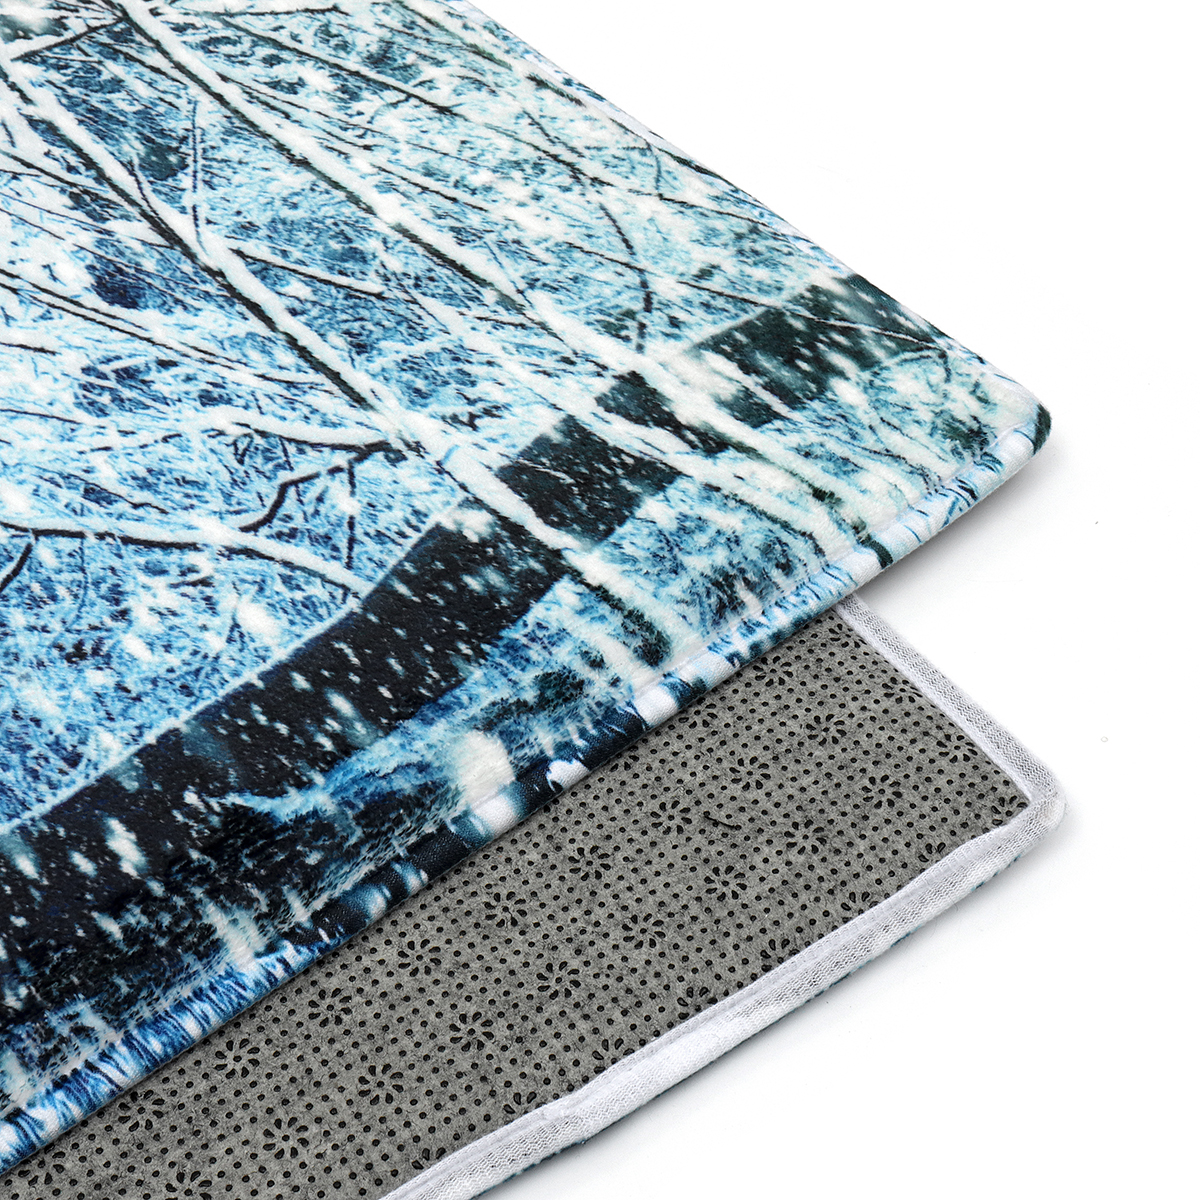 180cm Non-Slip Kitchen Bathroom Floor Mat Pad Rug Carpet Doormat Indoor Cushion